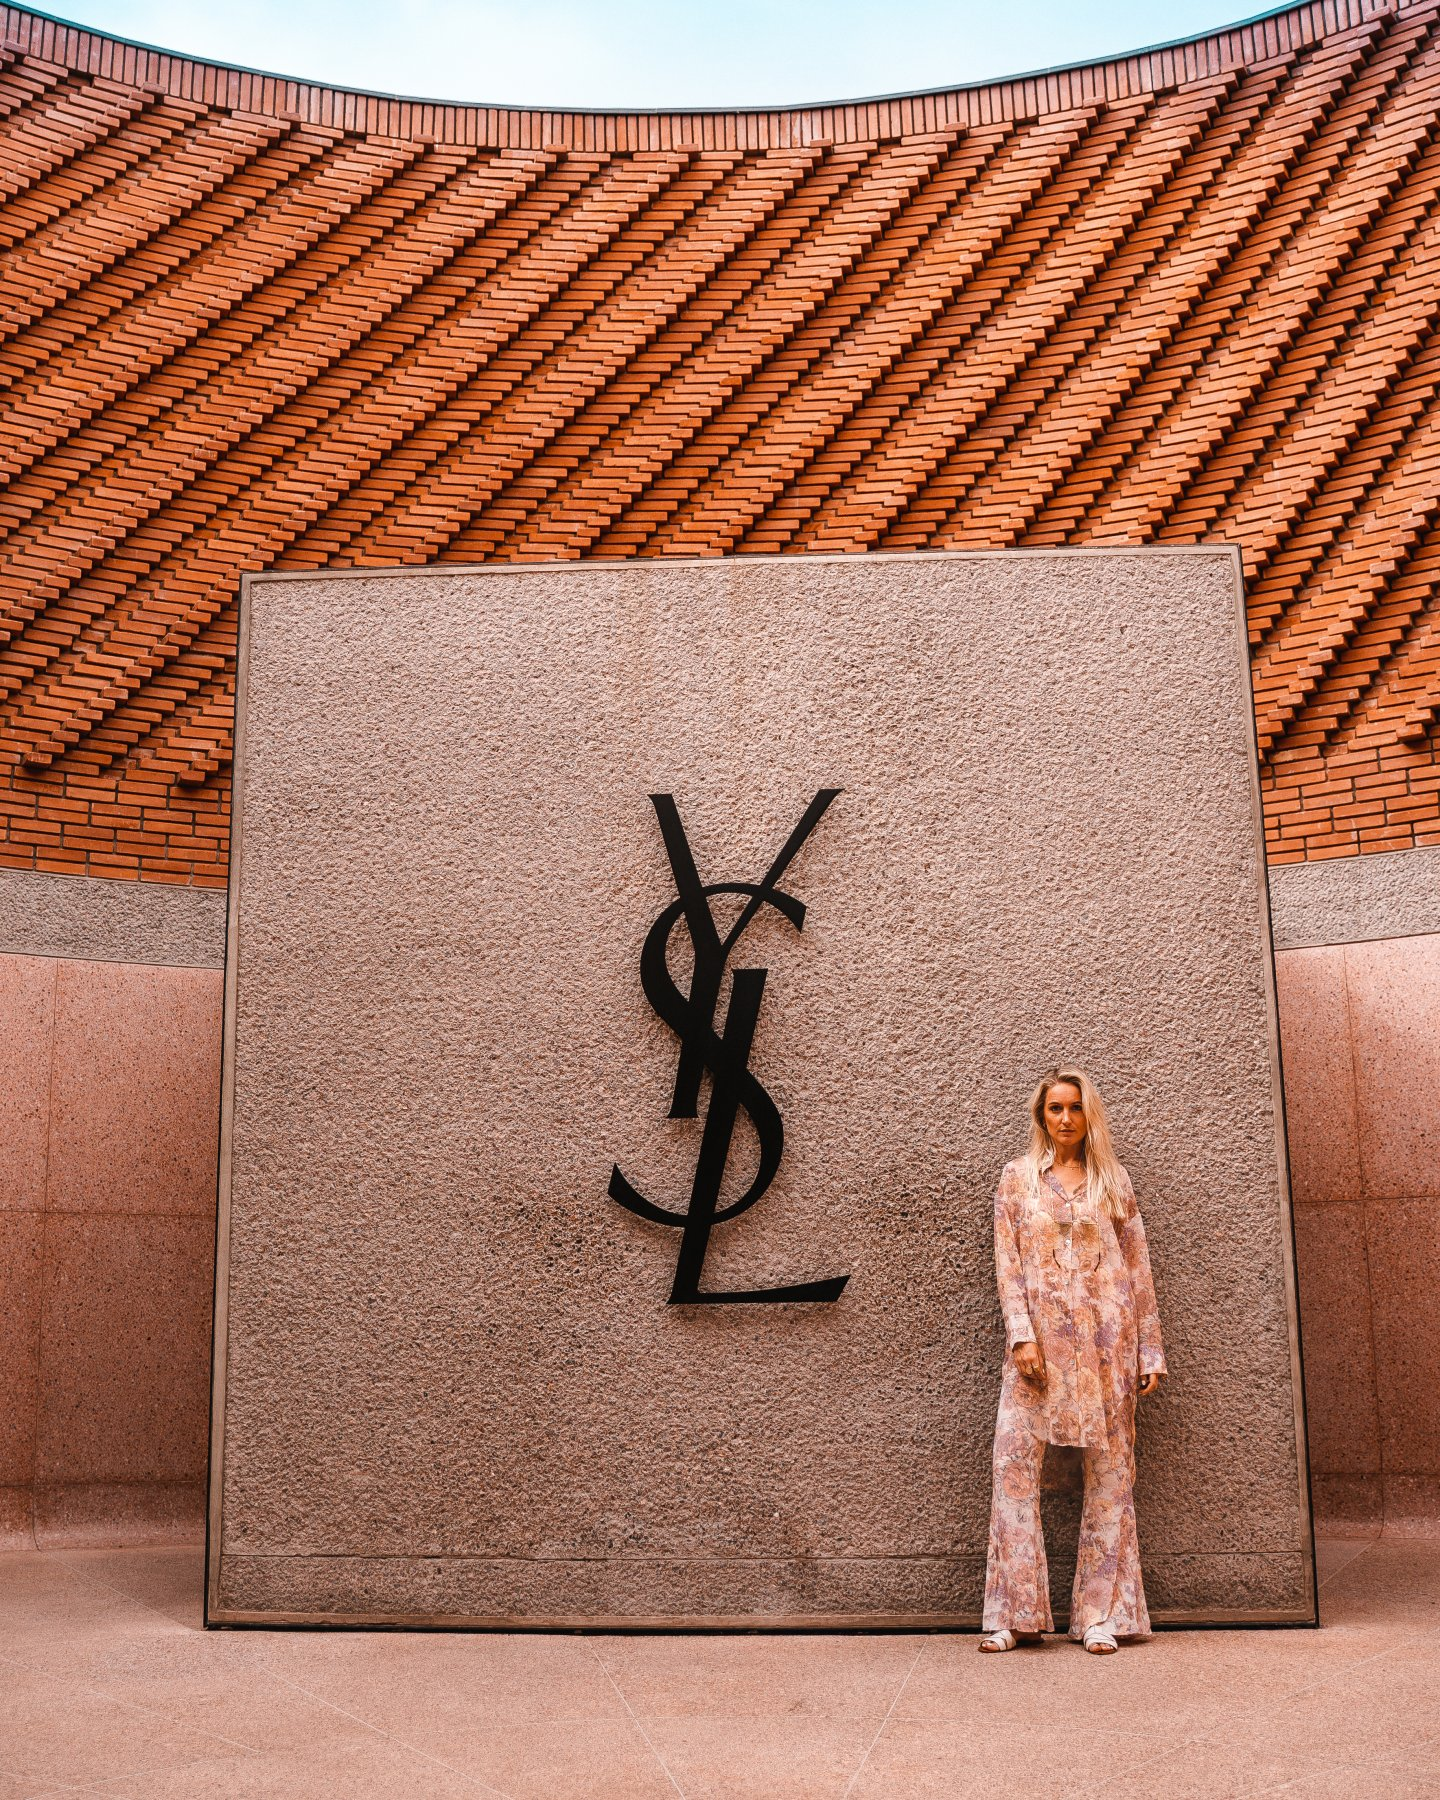 YSL MUSEUM - TOP 10 THINGS TO DO IN MARRAKECH